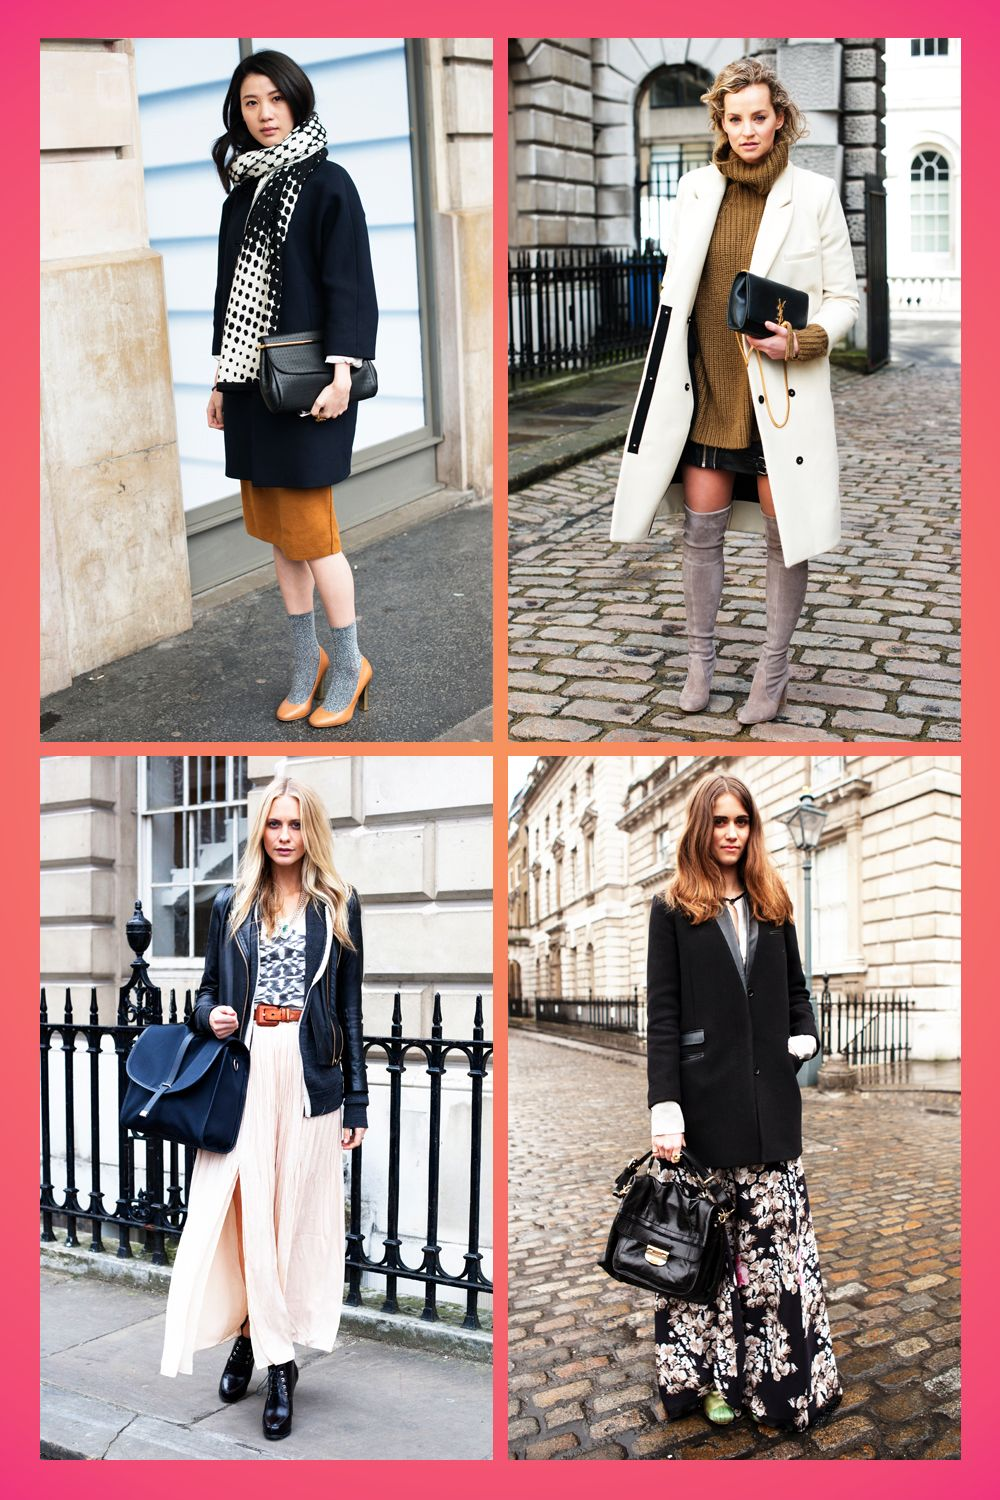 How Can I Wear Dresses in Winter Without Always Wearing Tights?